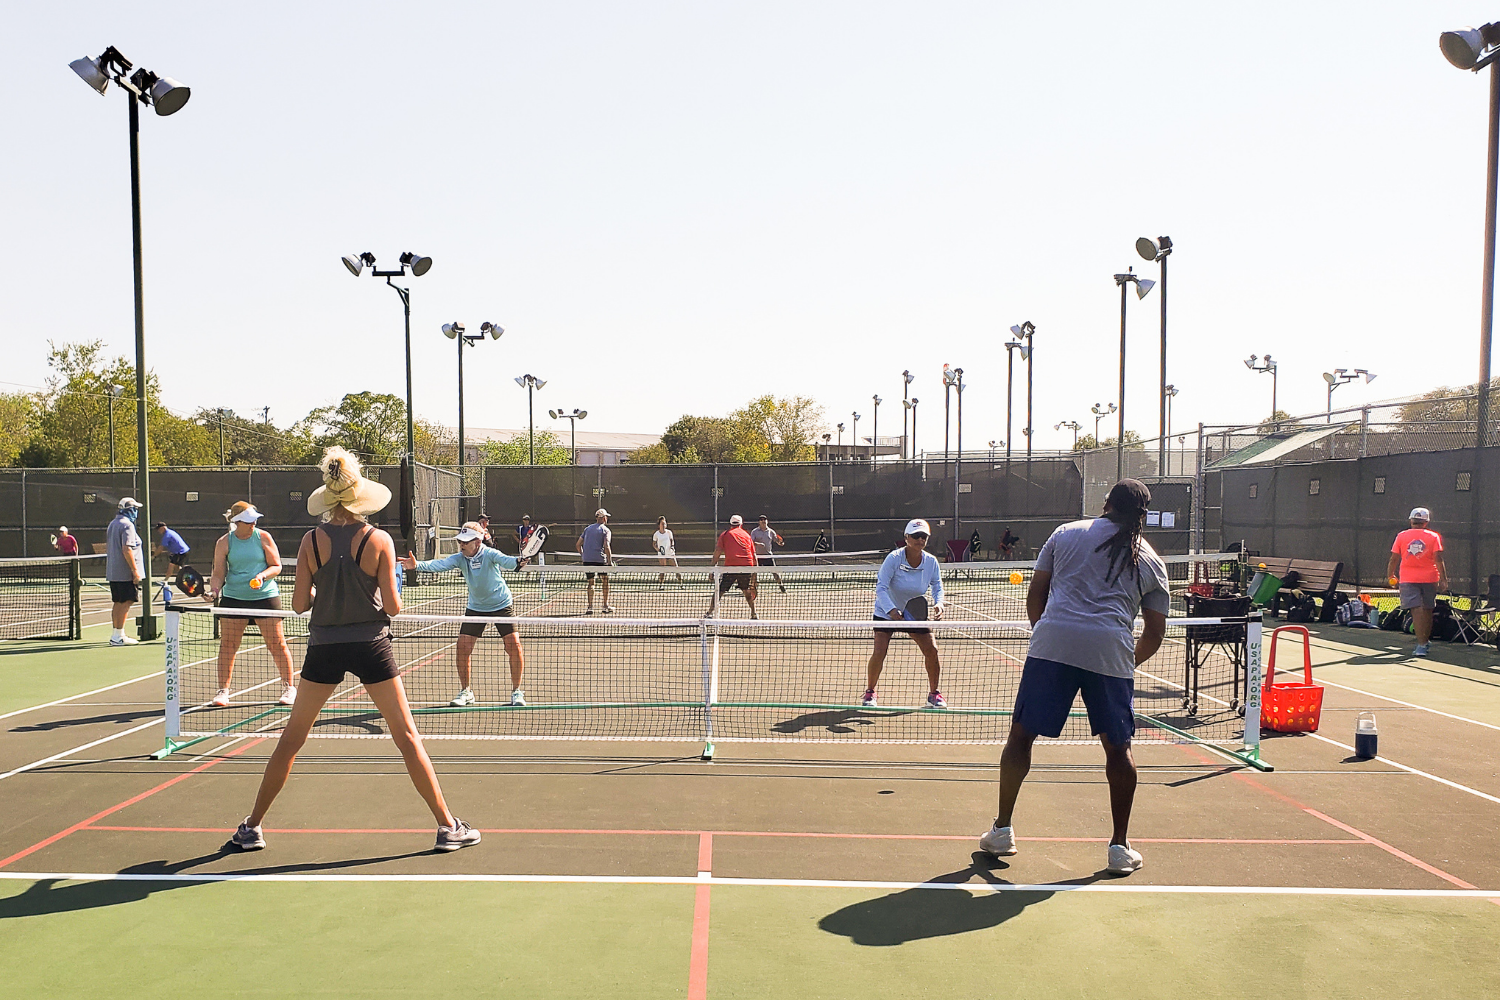 Pickleball game at the Georgetown Tennis Center in Georgetown, TX